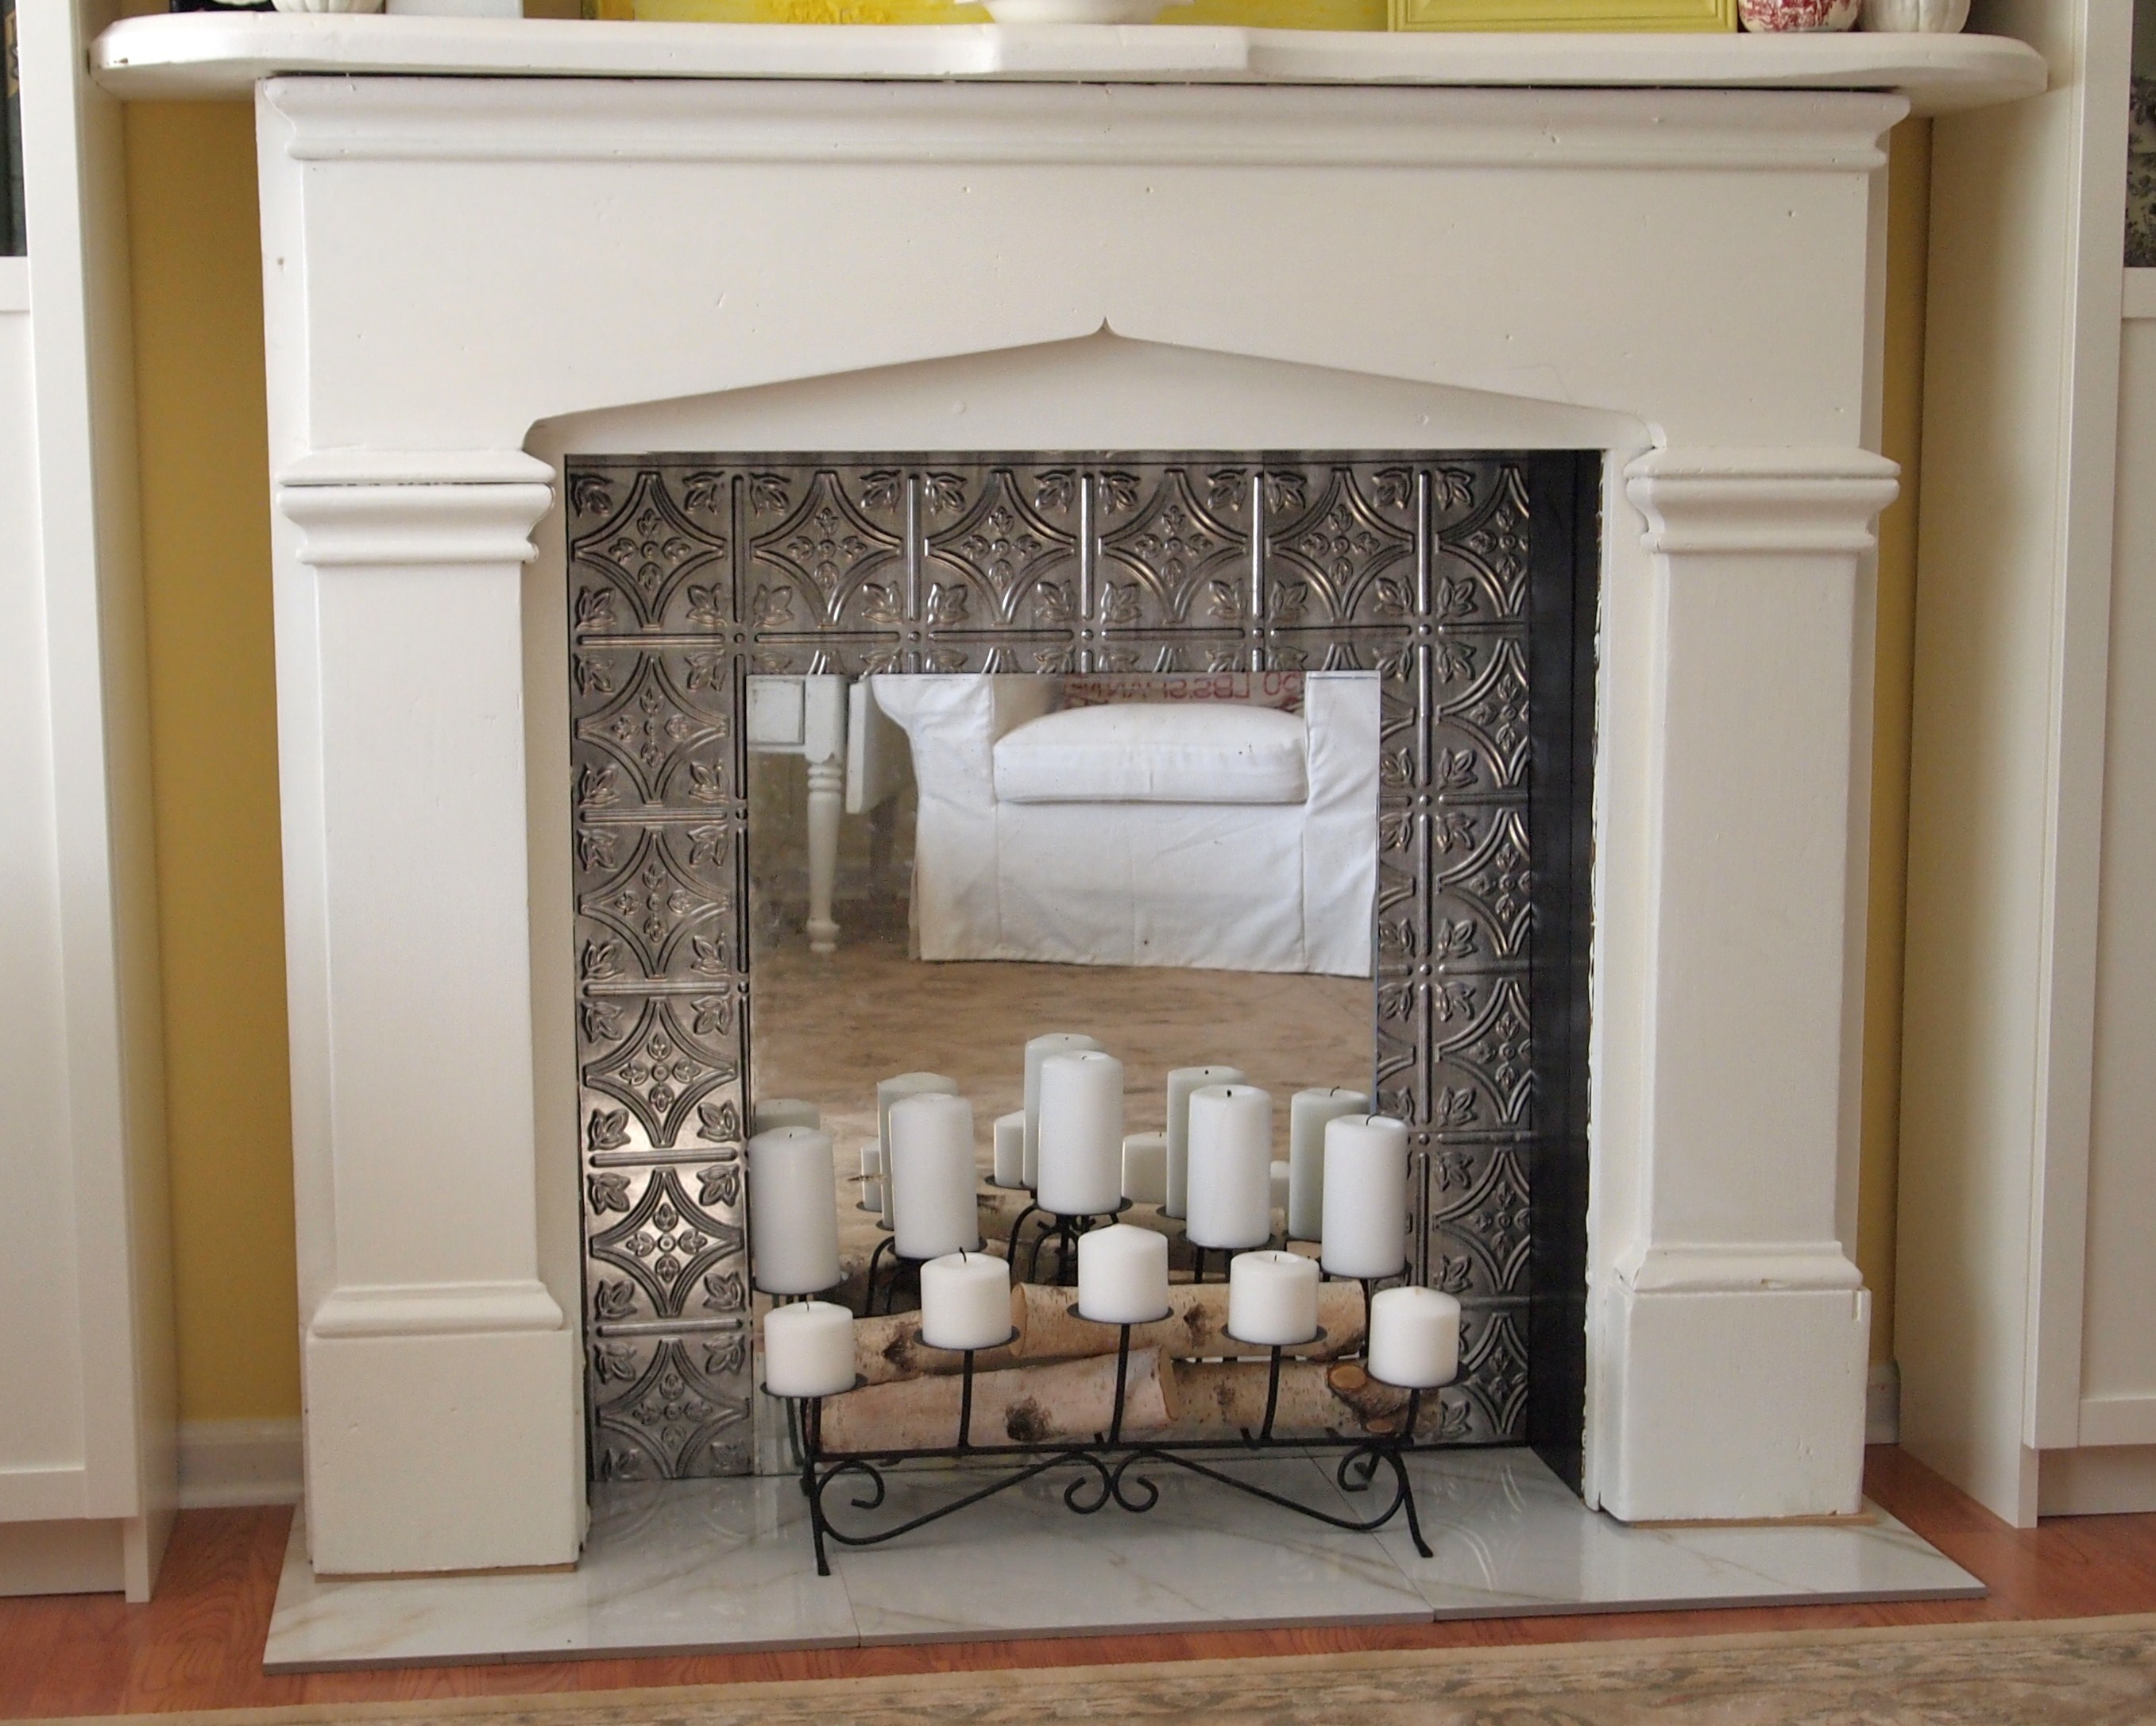 Fake Fireplace in Bedroom